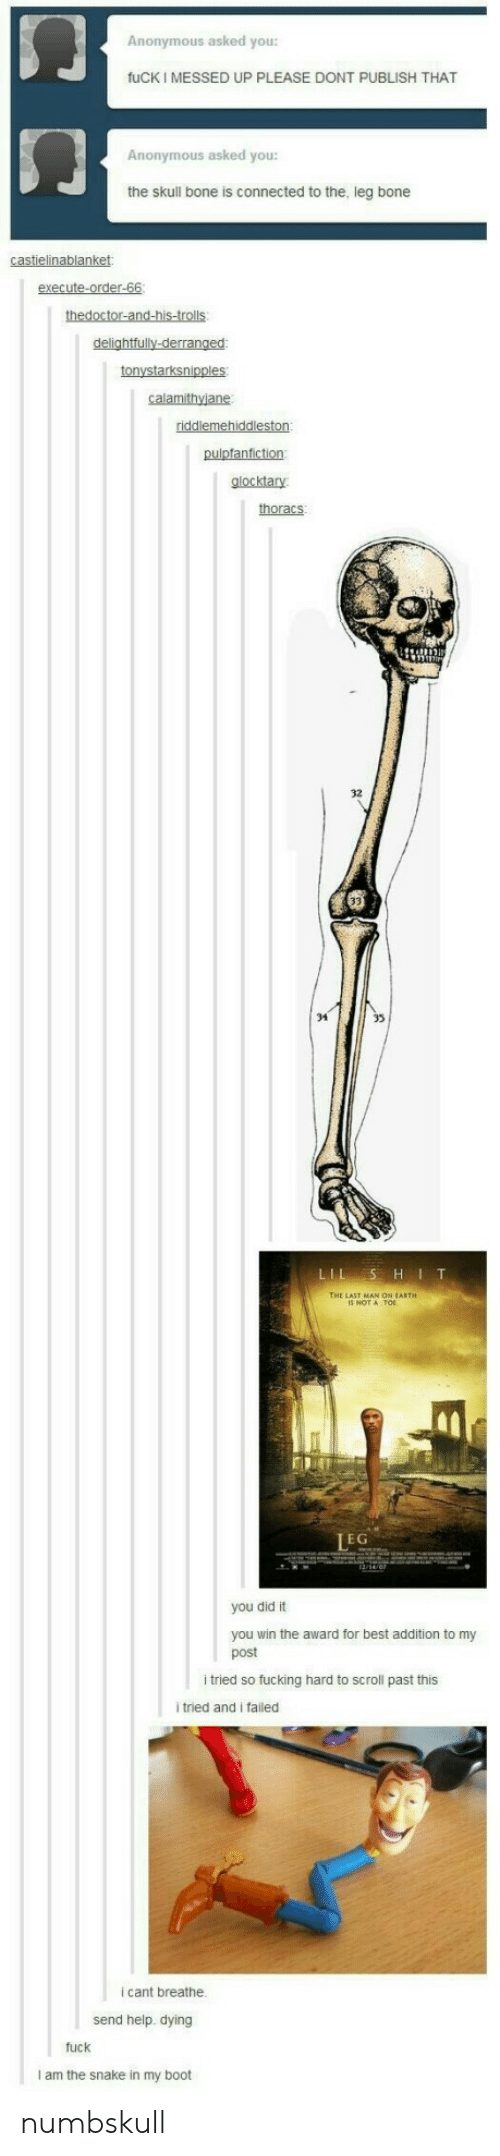 Booted: Anonymous asked you:  fuCK I MESSED UP PLEASE DONT PUBLISH THAT  门  Anonymous asked you:  the skull bone is connected to the, leg bone  glocktary  thoracs  32  34  THE LAST MAN O씌 EARTH  IS NOT A TOE  EG  you did it  you win the award for best addition to my  post  i tried so fucking hard to scroll past this  itried and i failed  i cant breathe  send help. dying  fuck  I am the snake in my boot numbskull